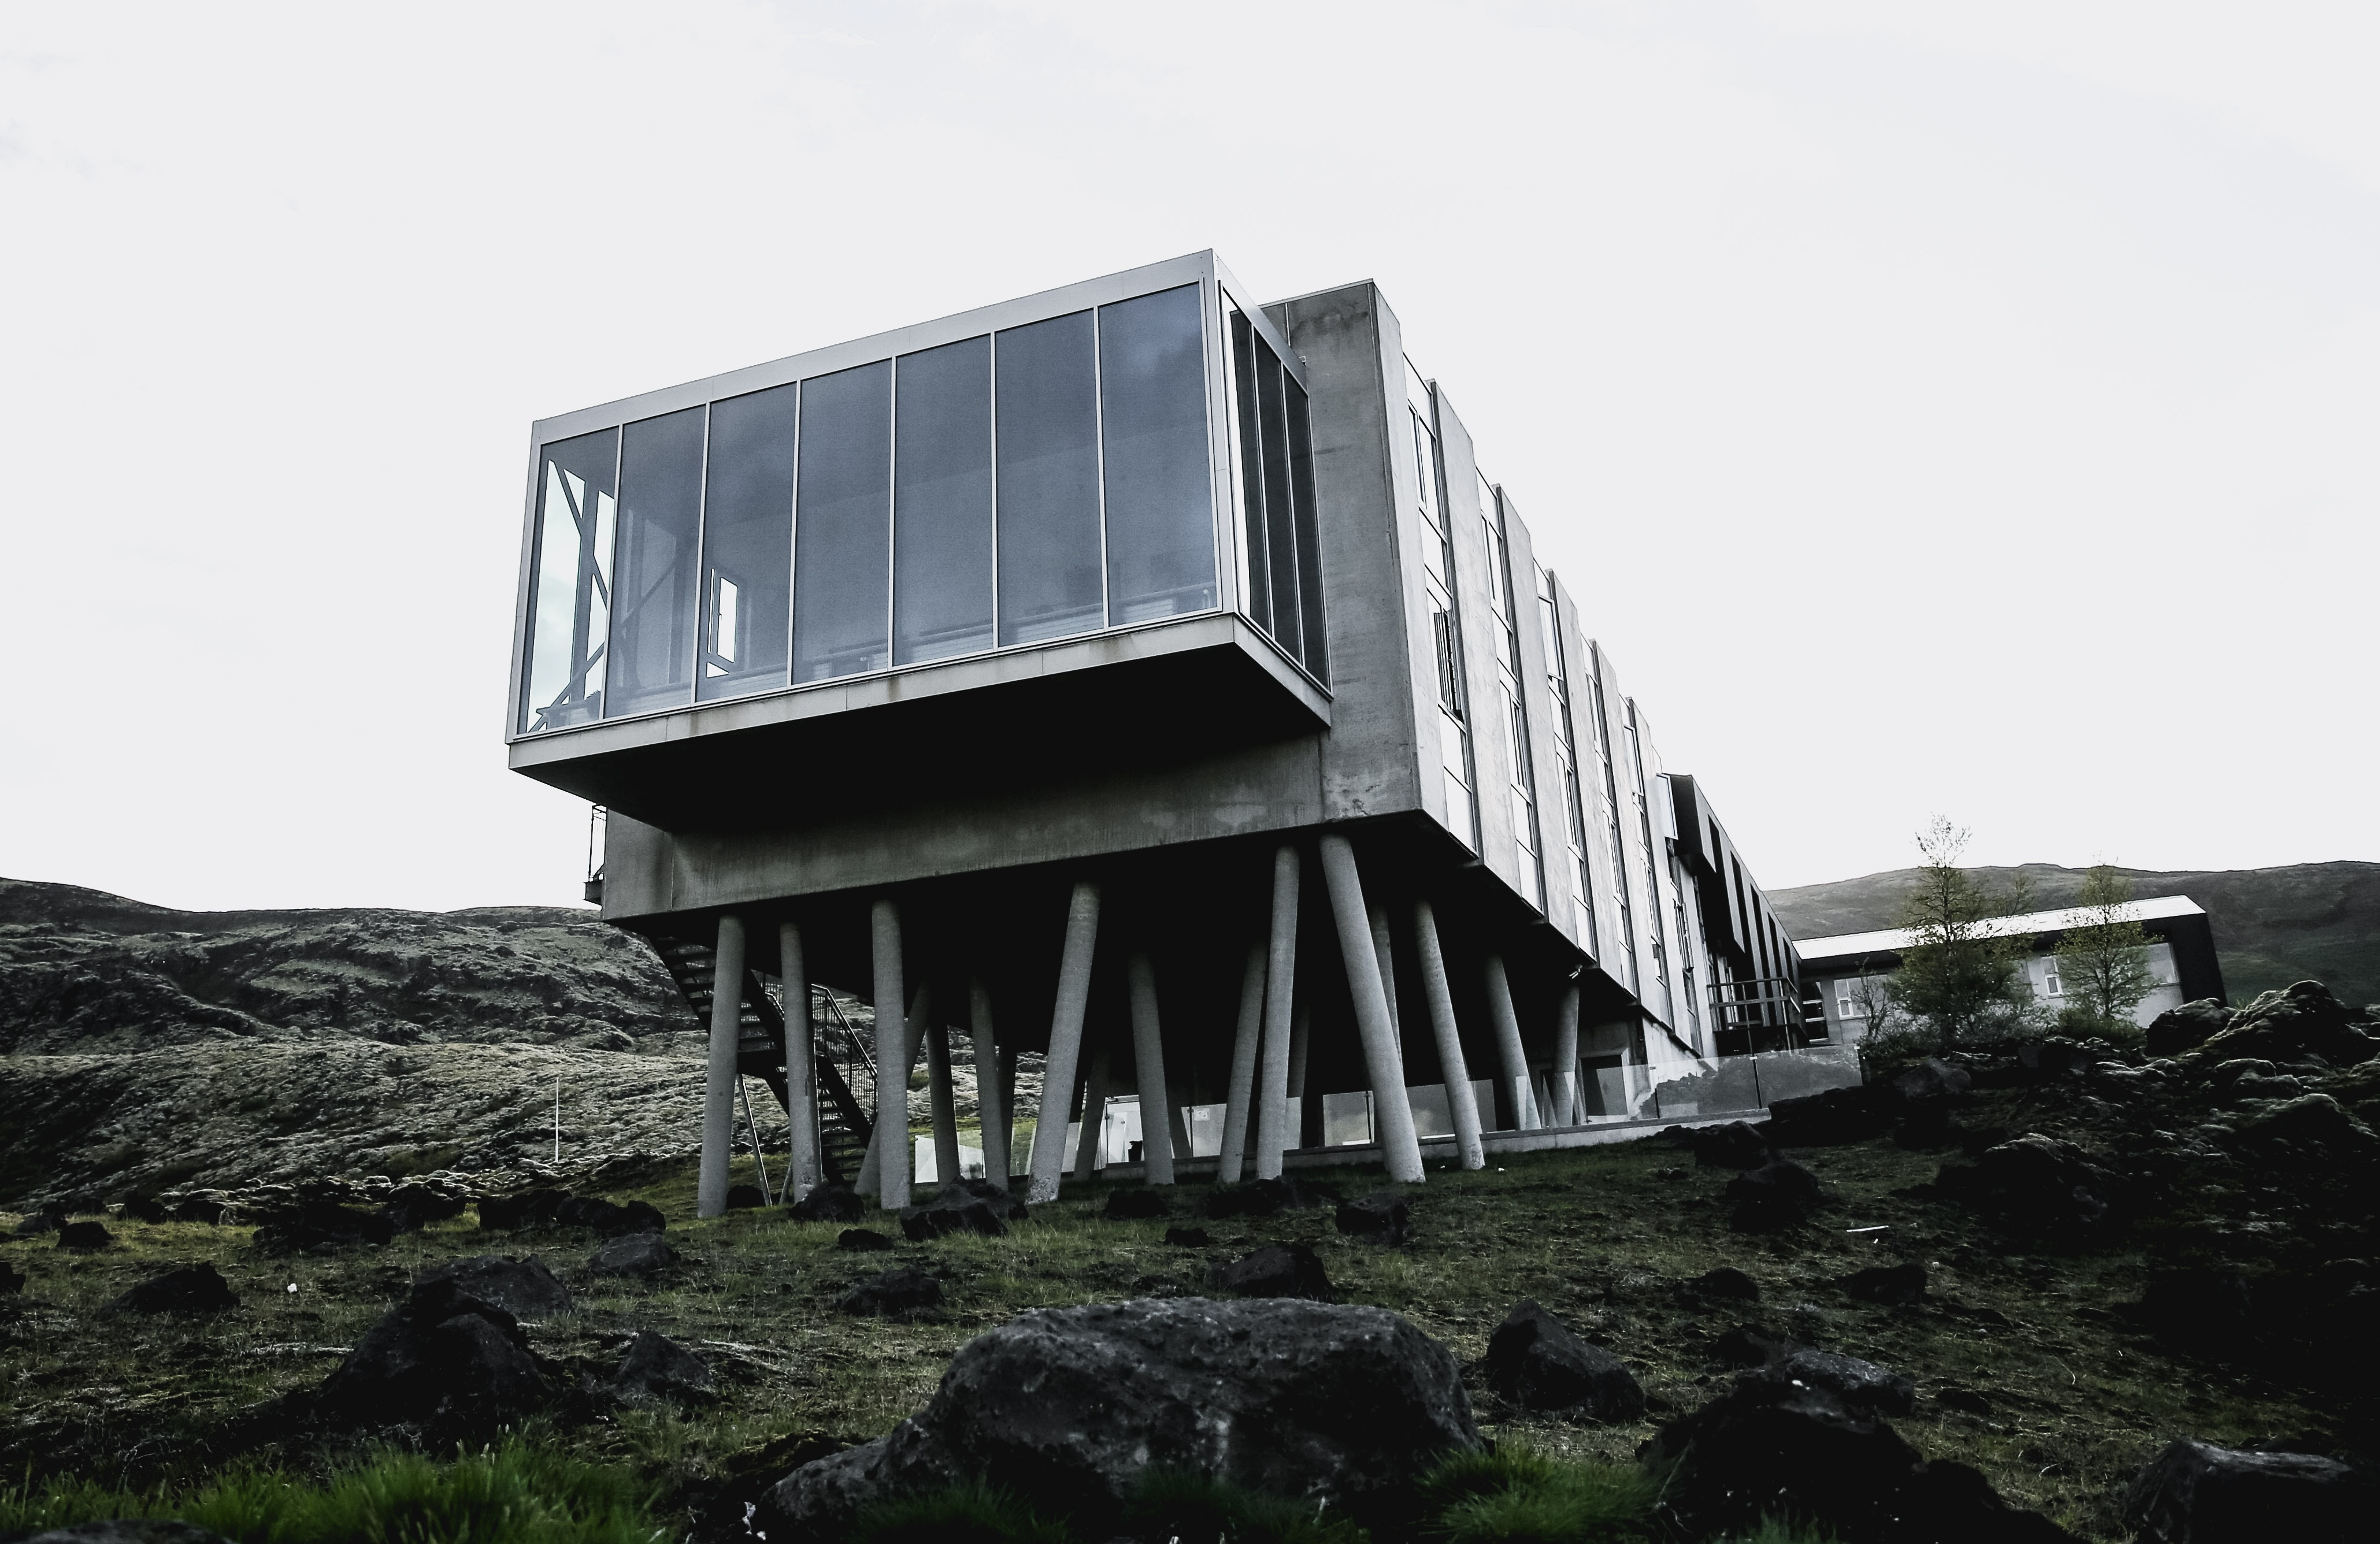 landscape photo of gray house during daytime